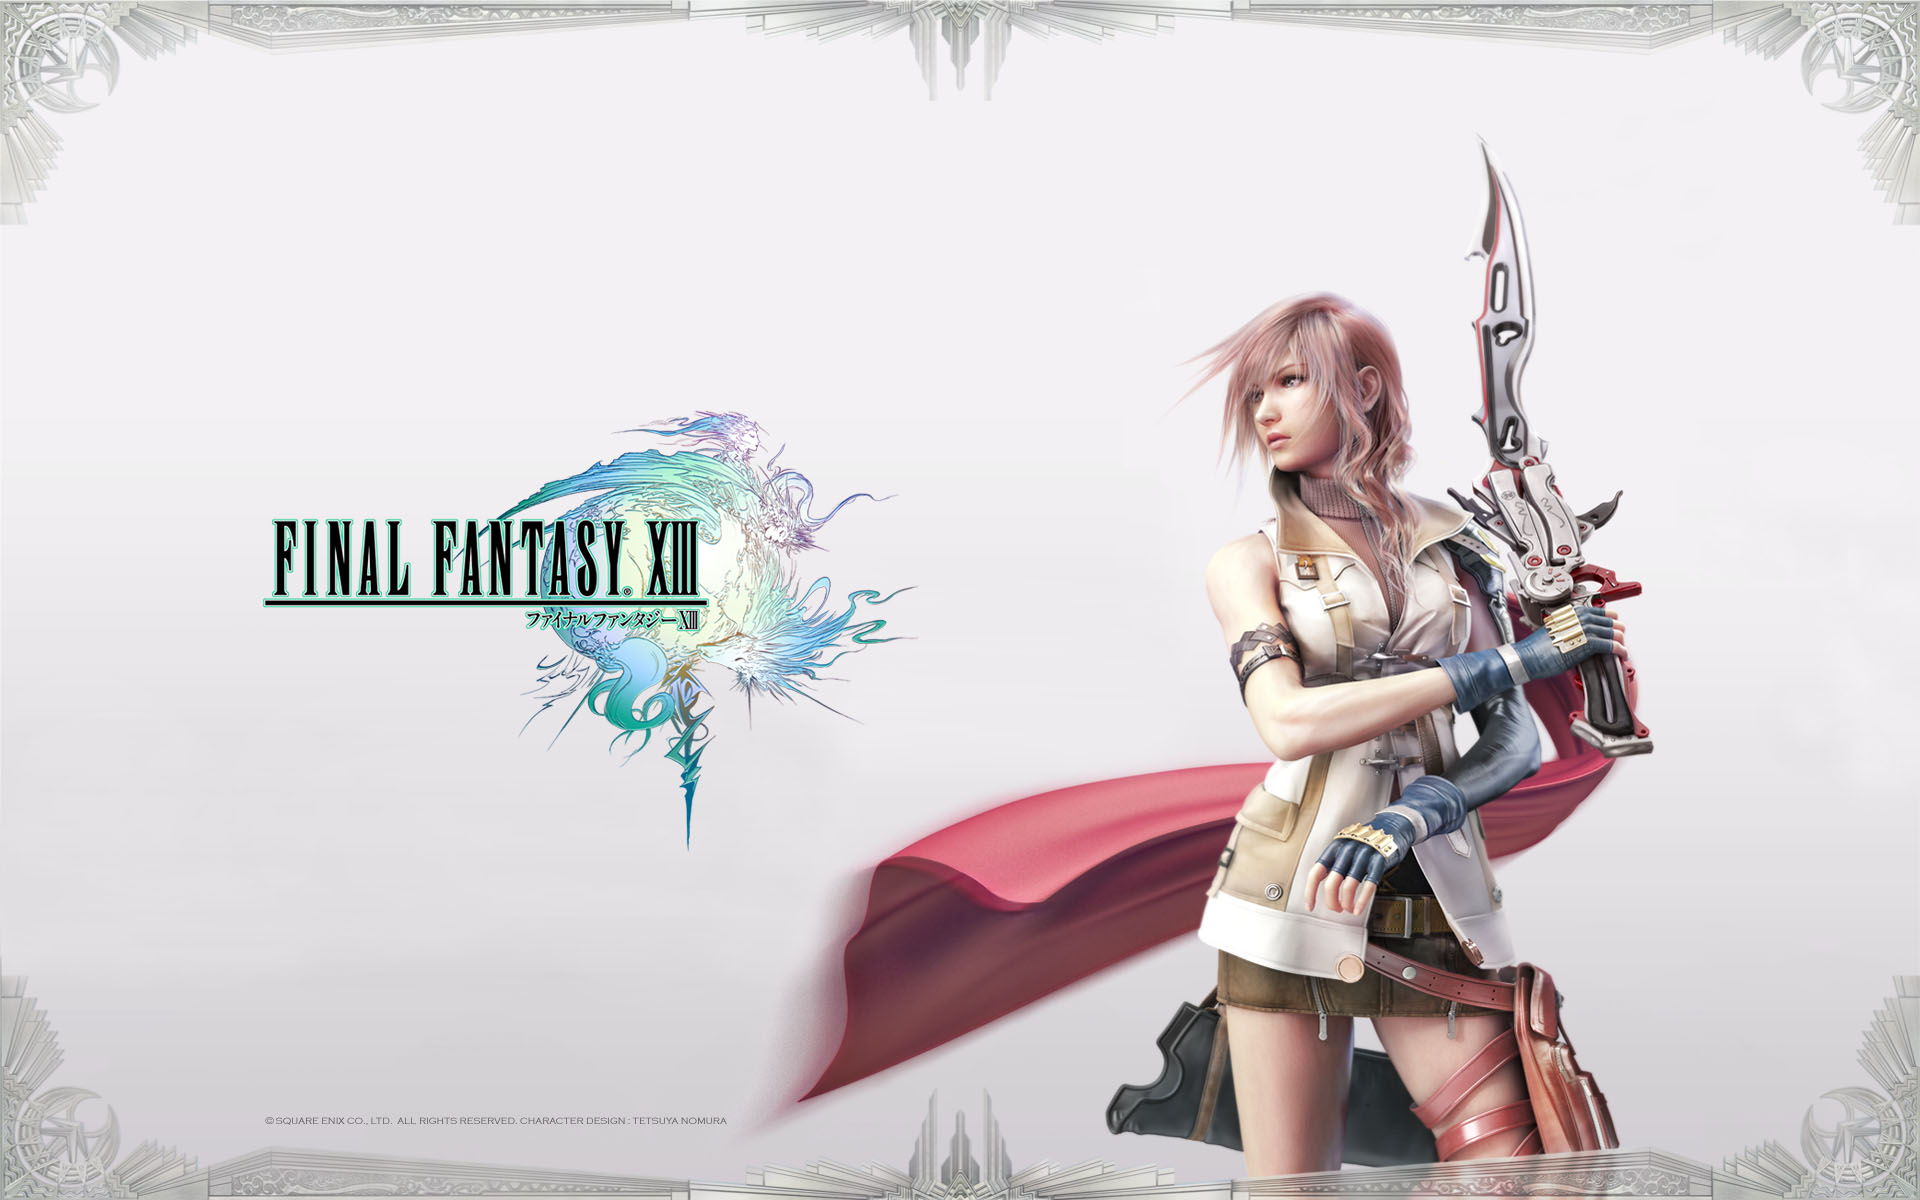 final fantasy xiii / ffxiii / ff13 - wallpapers